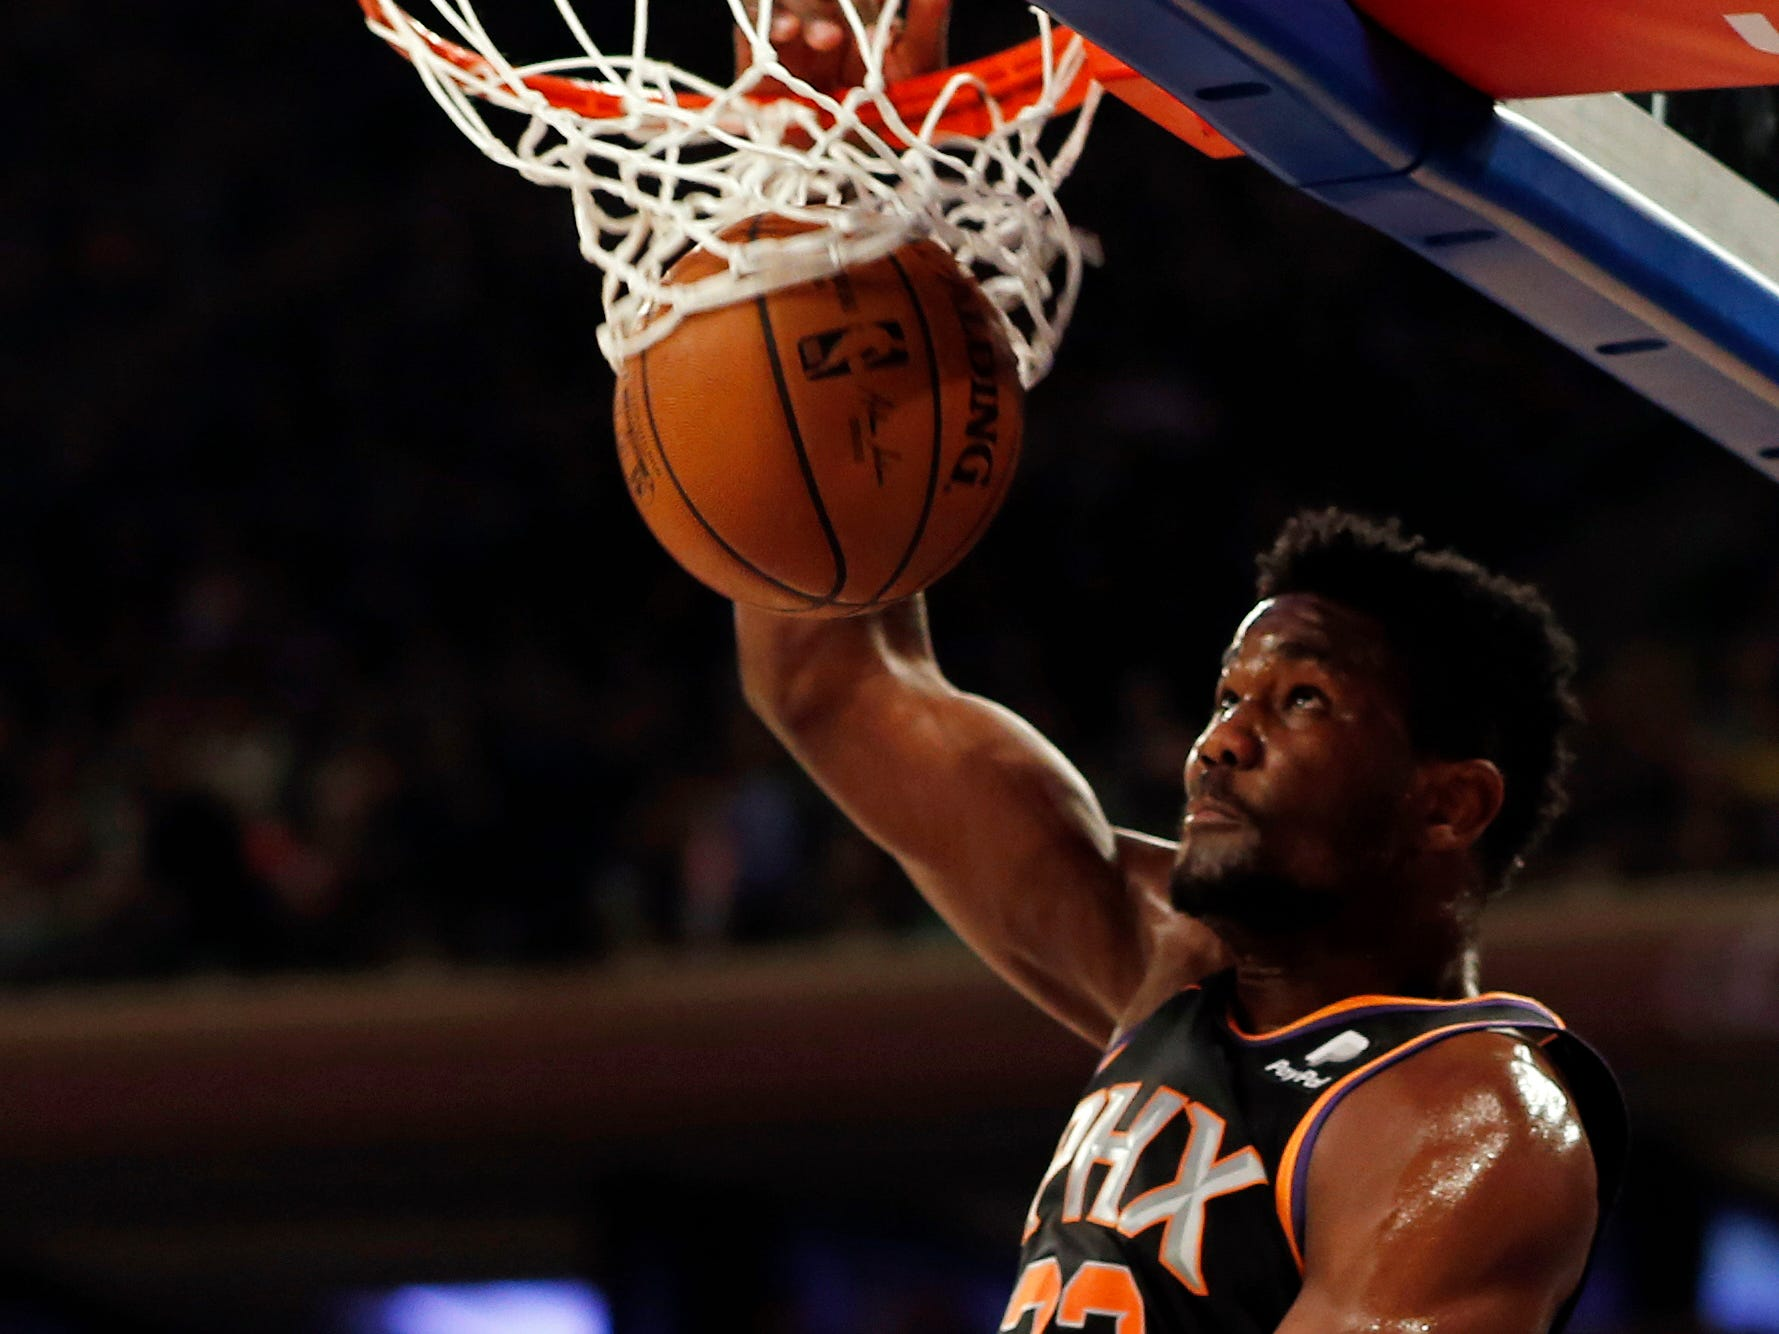 Dec 17, 2018; New York, NY, USA; Phoenix Suns center Deandre Ayton (22) dunks the ball against the New York Knicks during the first half at Madison Square Garden. Mandatory Credit: Adam Hunger-USA TODAY Sports